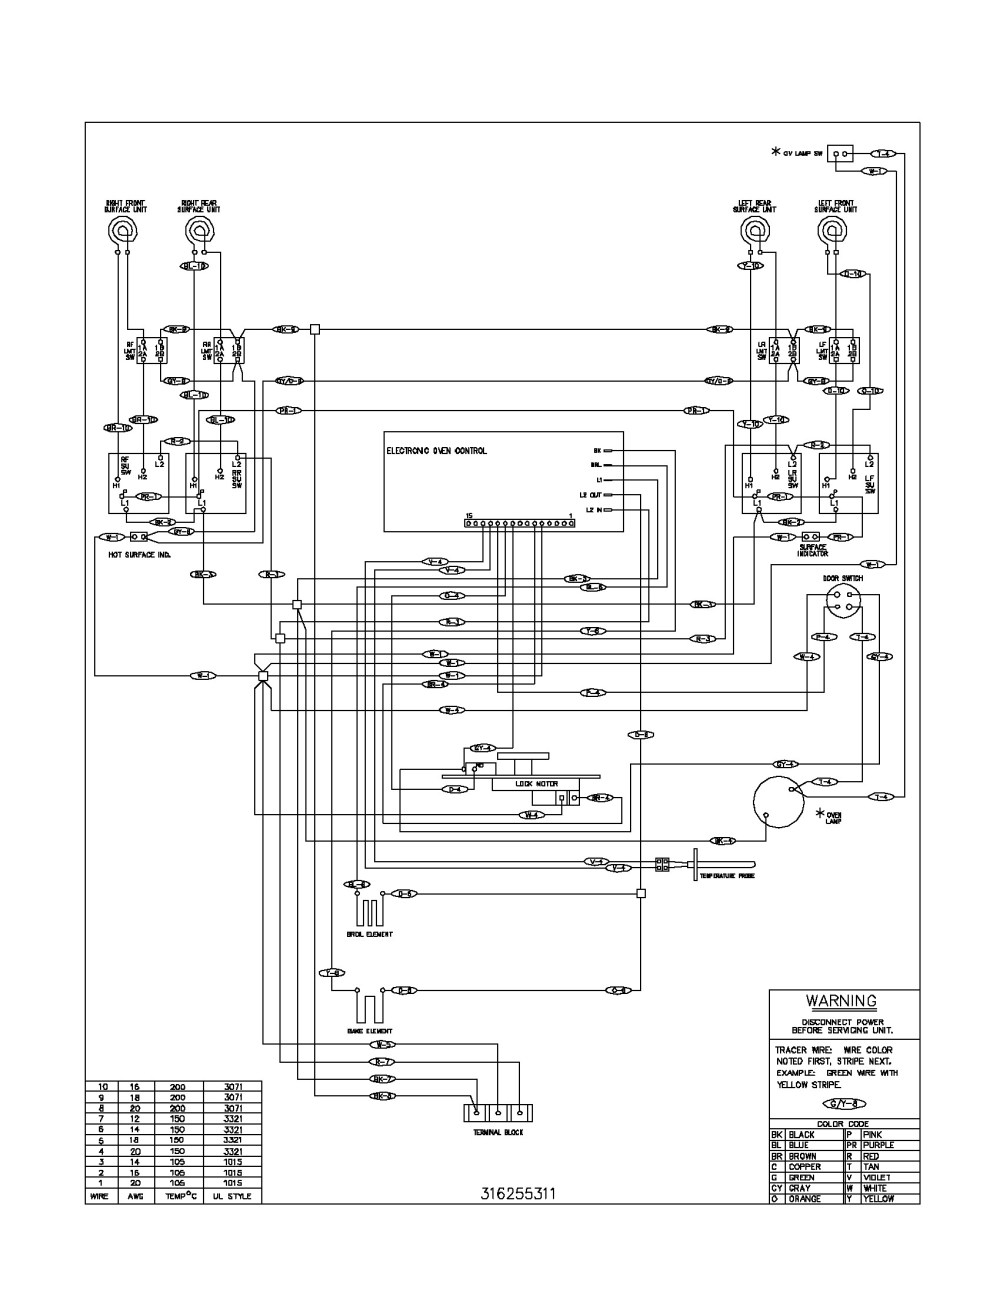 Wiring Diagram For Frigidaire Refrigerator - on